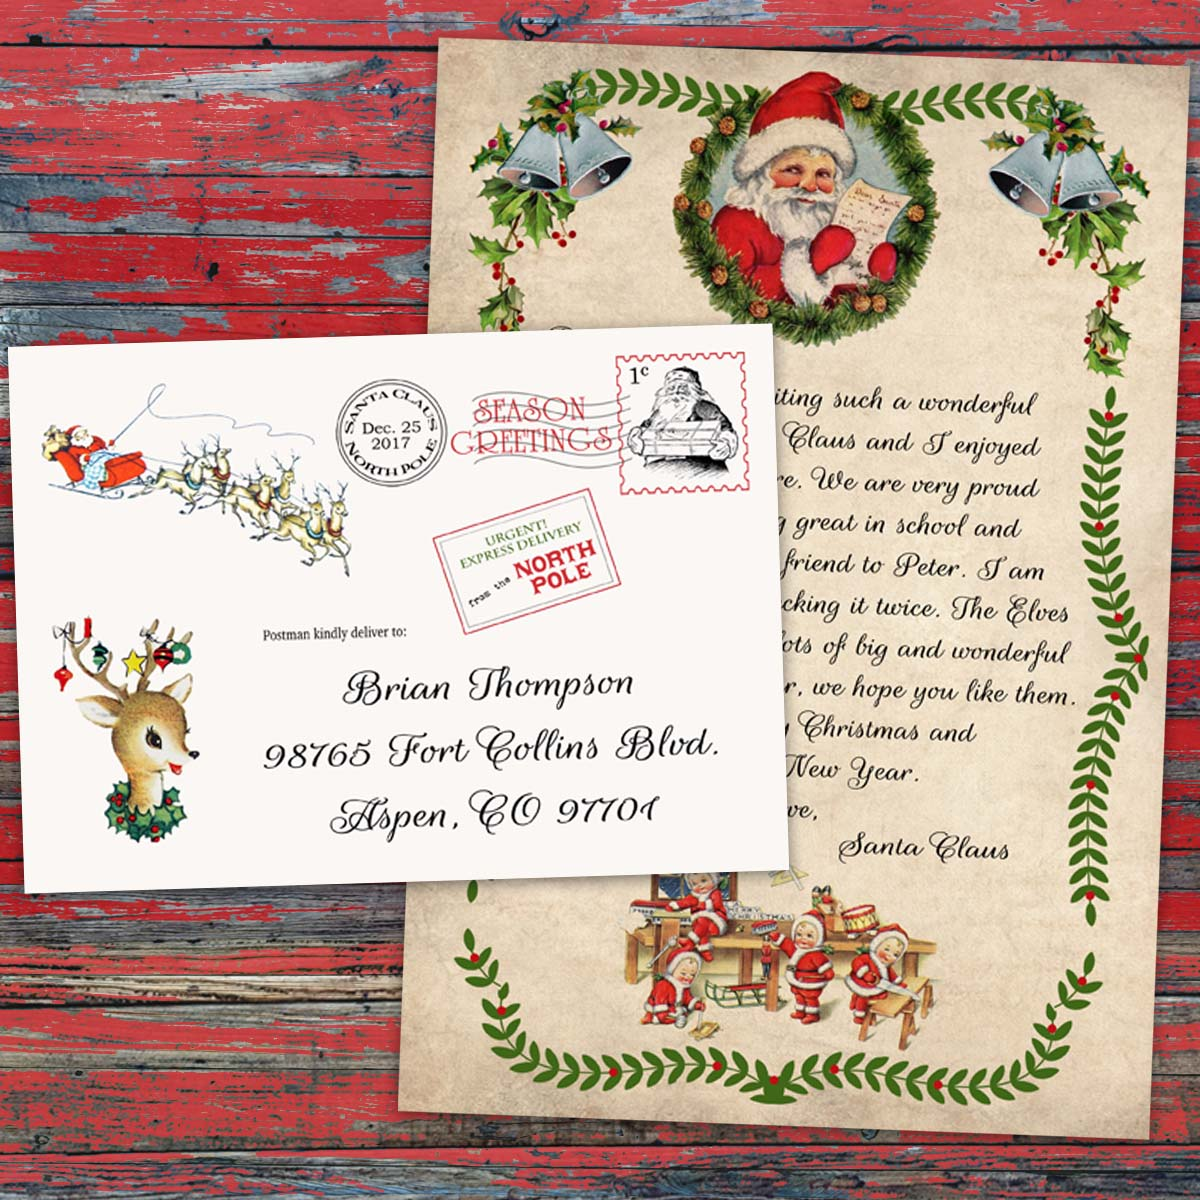 Personalized christmas letter from santa claus official north pole personalized christmas letter from santa spiritdancerdesigns Images